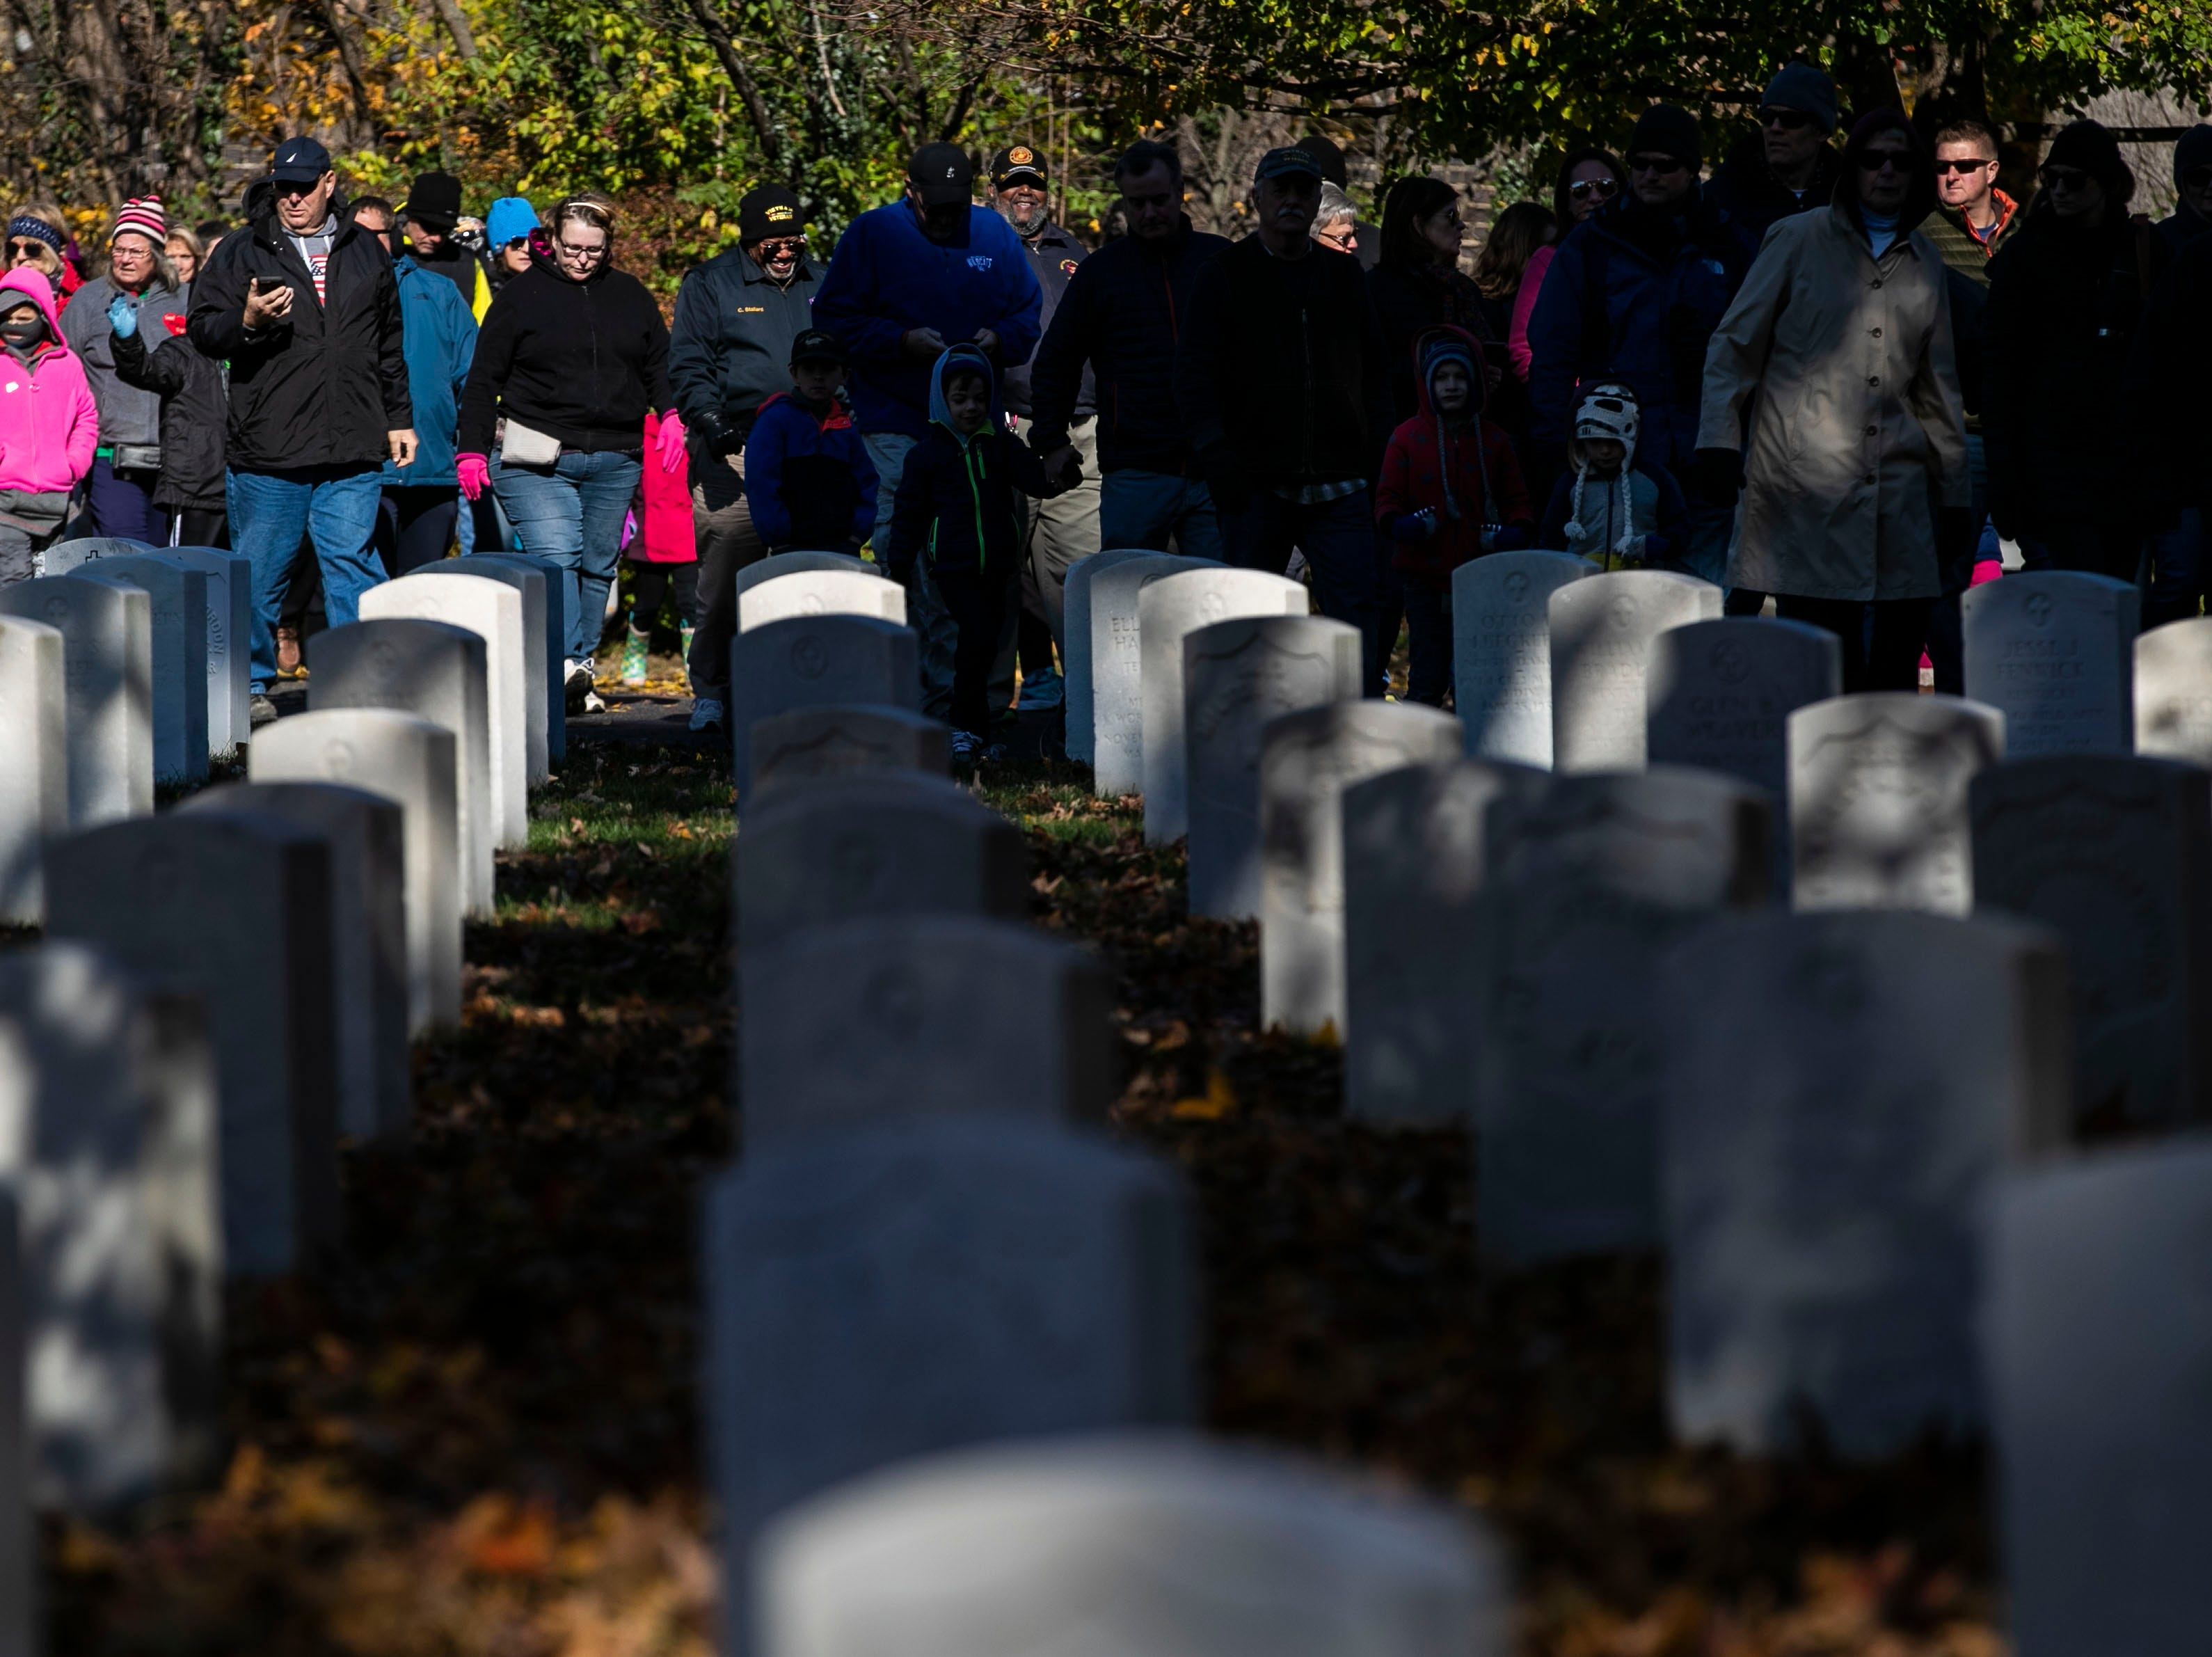 There was a short walk to Cave Hill Cemetery as a remembrance to military veterans during a Flags 4 Vets event Saturday, Nov. 10, 2018. Veterans Day is Sunday, Nov. 11. Around 250 volunteers placed nearly 7,500 flags on military veteran gravesites.